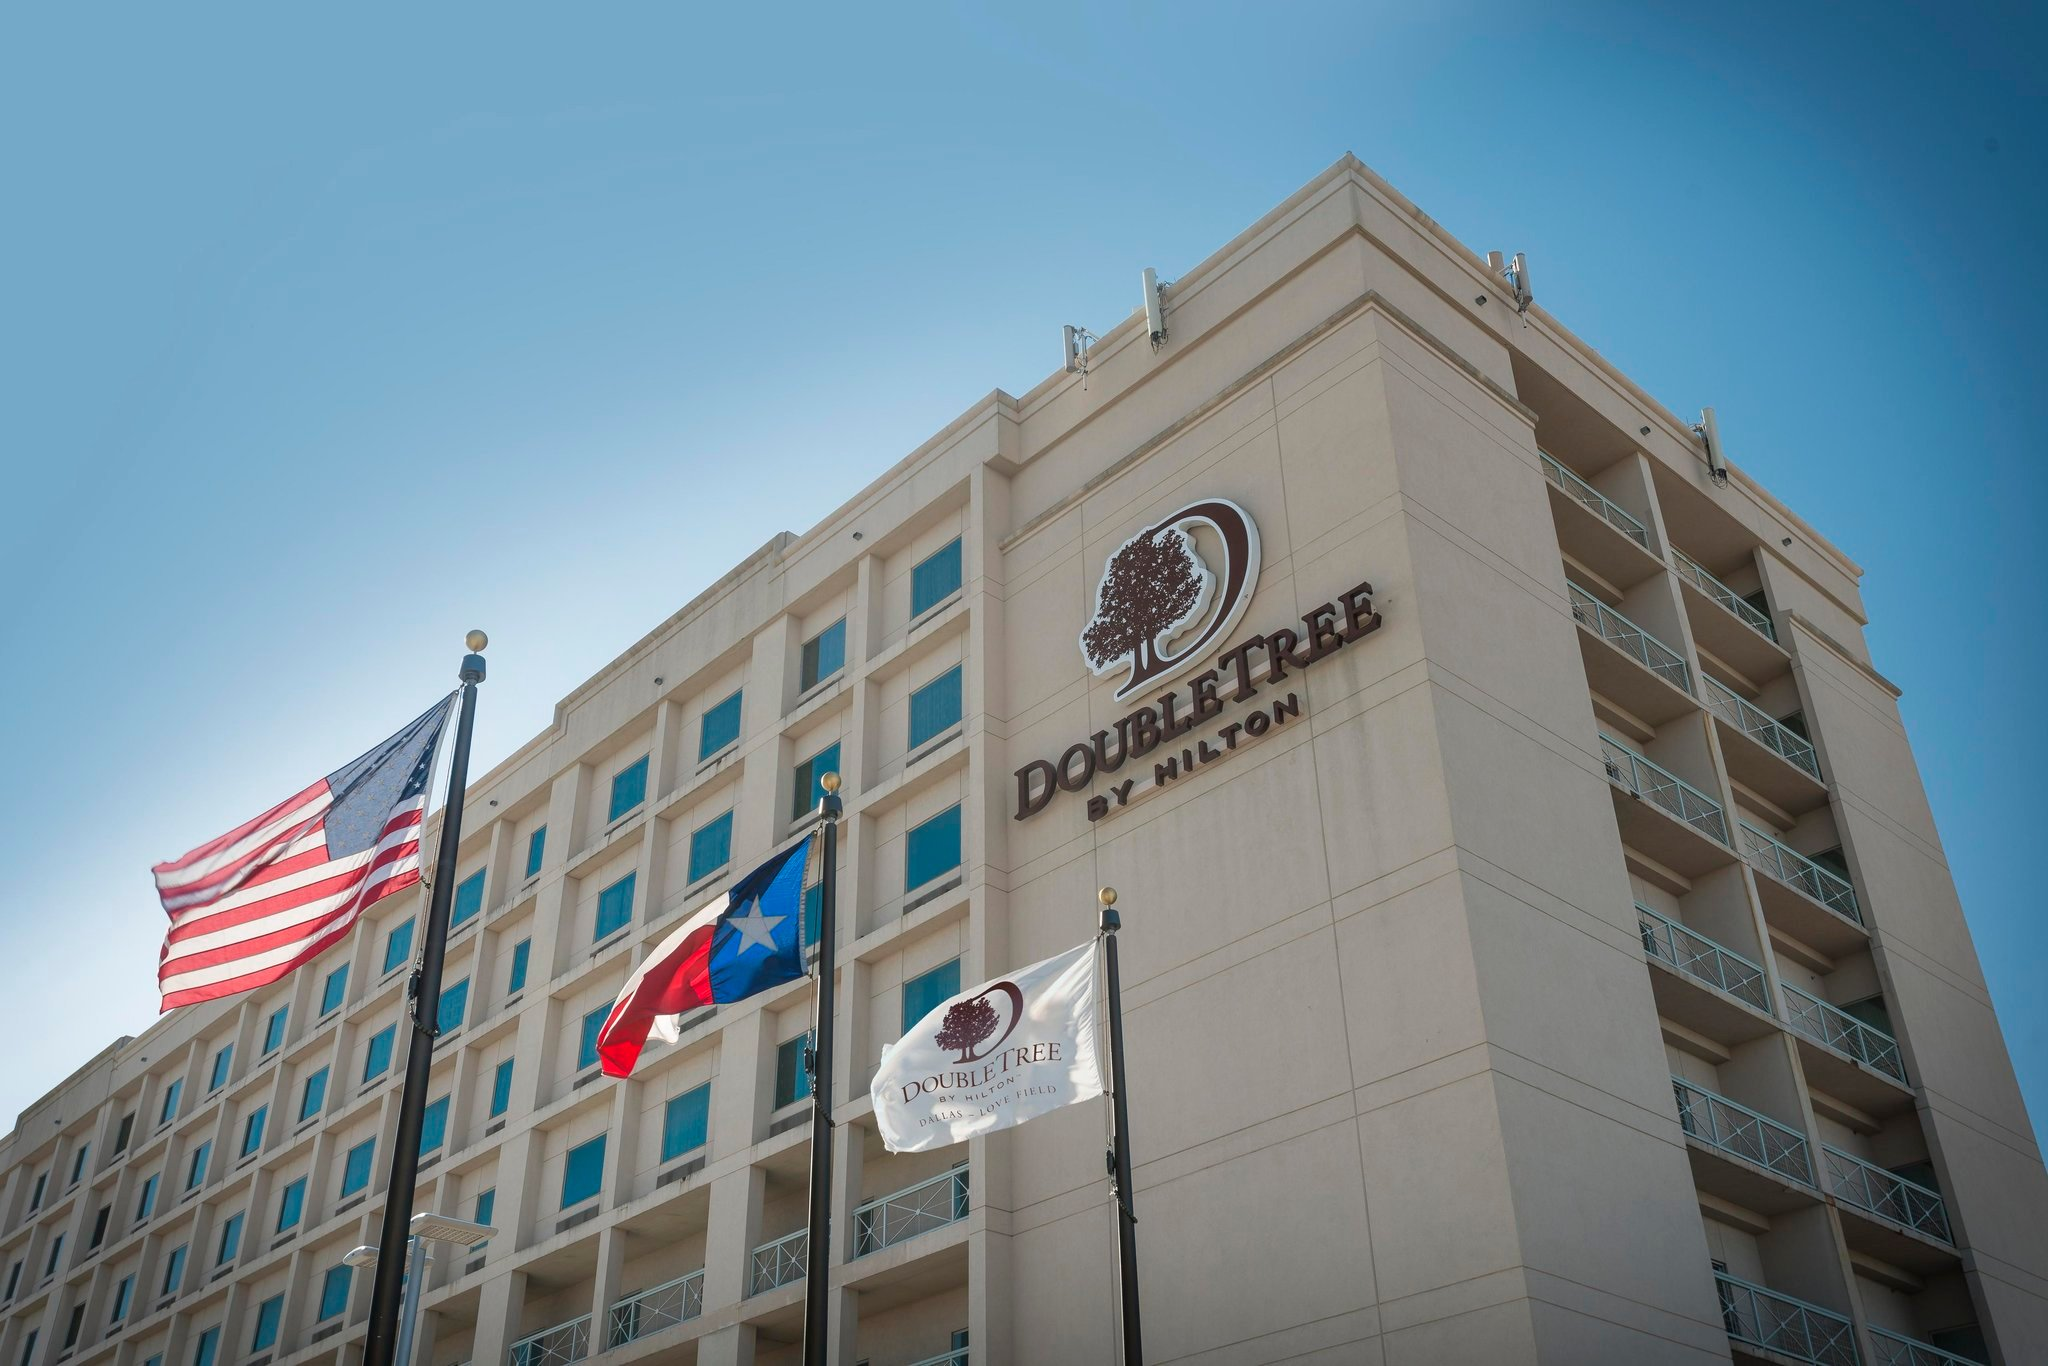 DoubleTree by Hilton Hotel Dallas - Love Field